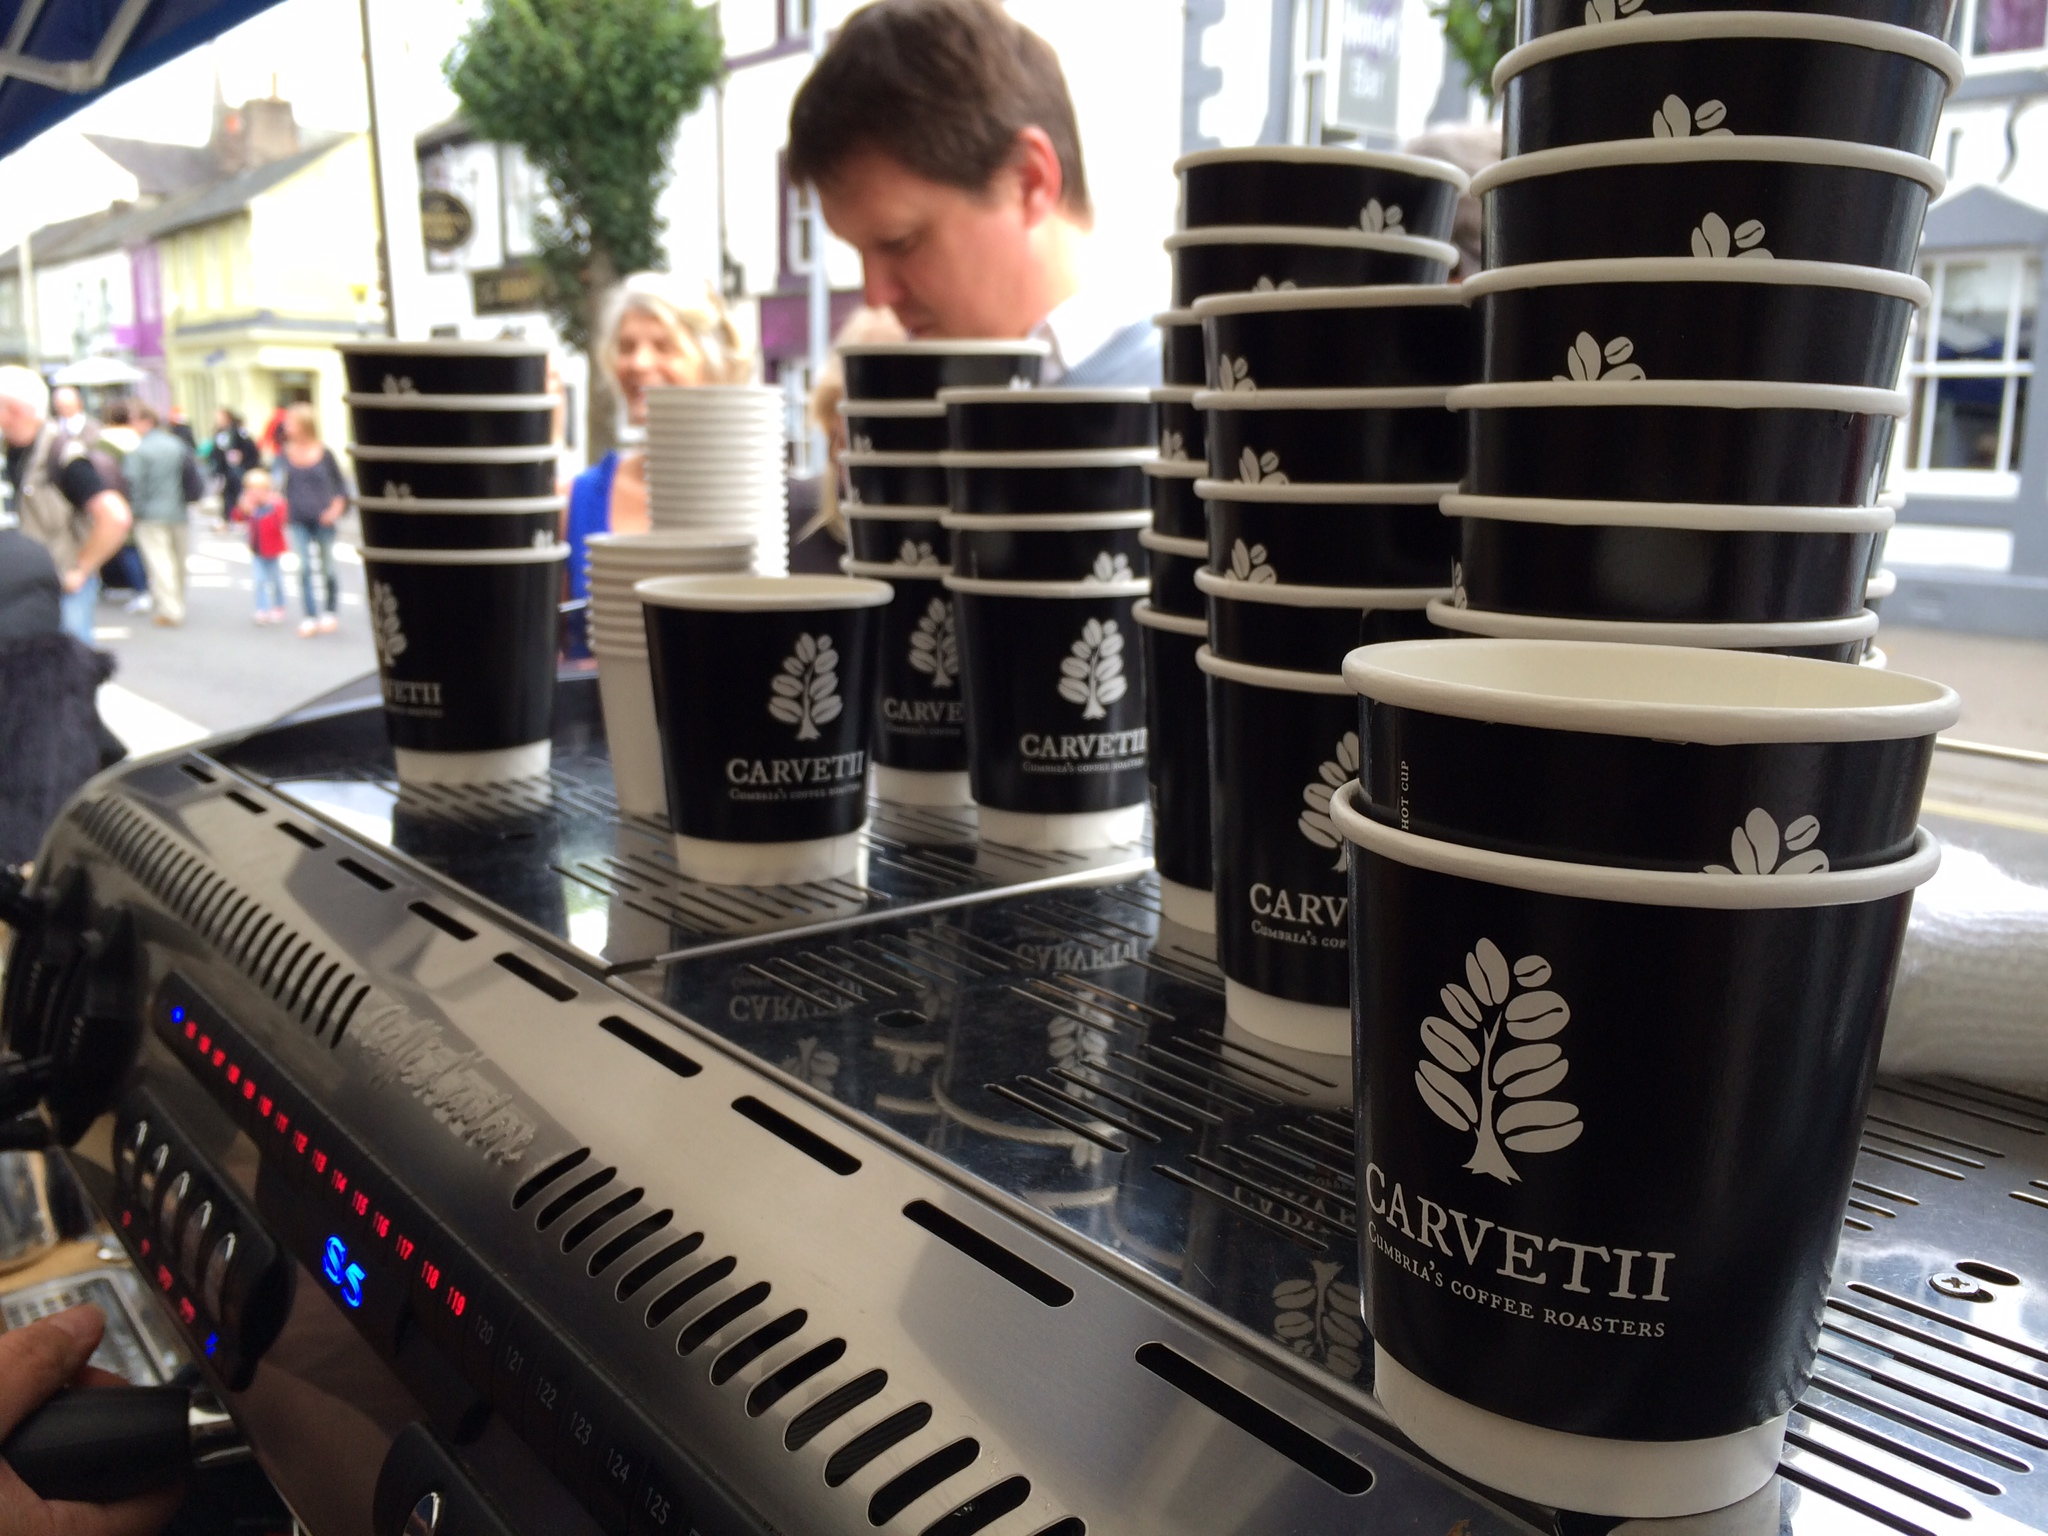 Markets, Festivals and Events via @carvetiicoffee